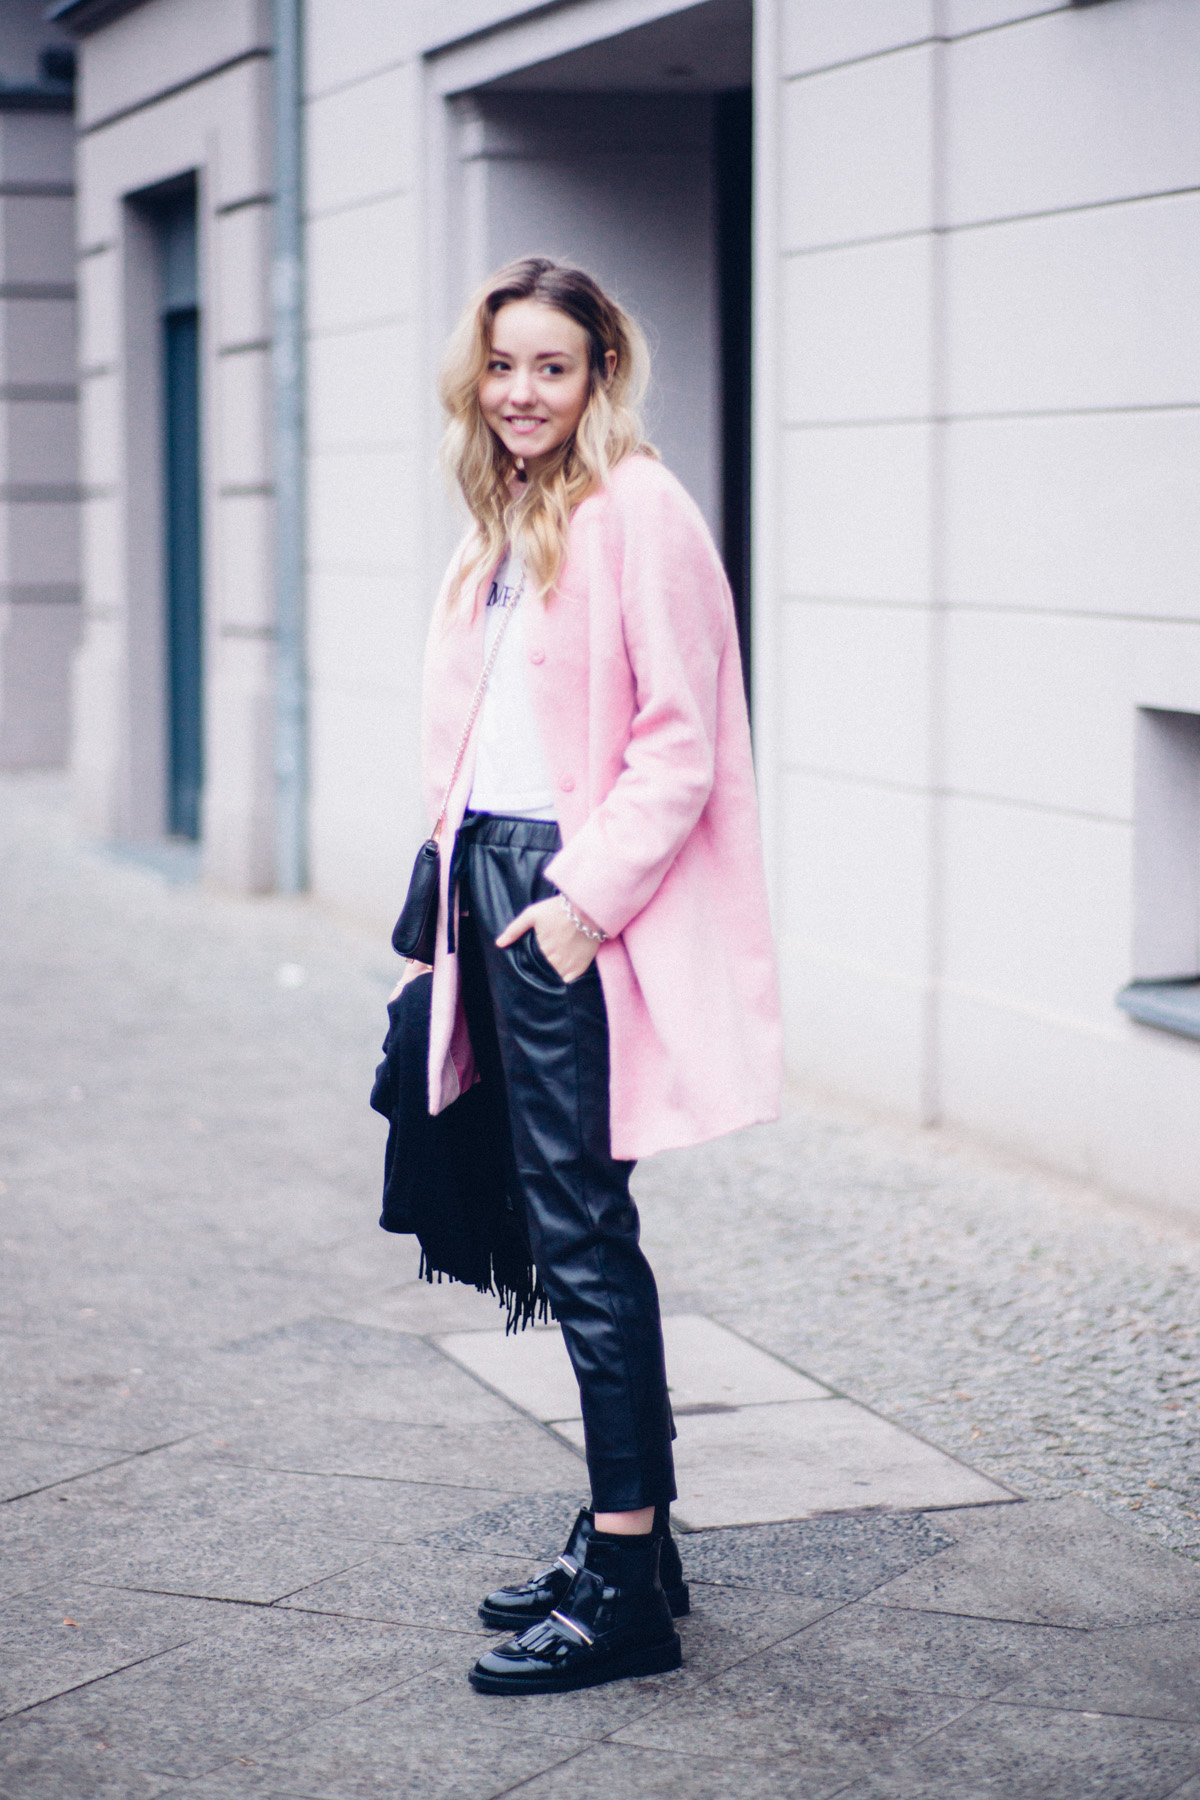 modeblog-fashionblog-deutschland-berlin-blogger-outfit-style-